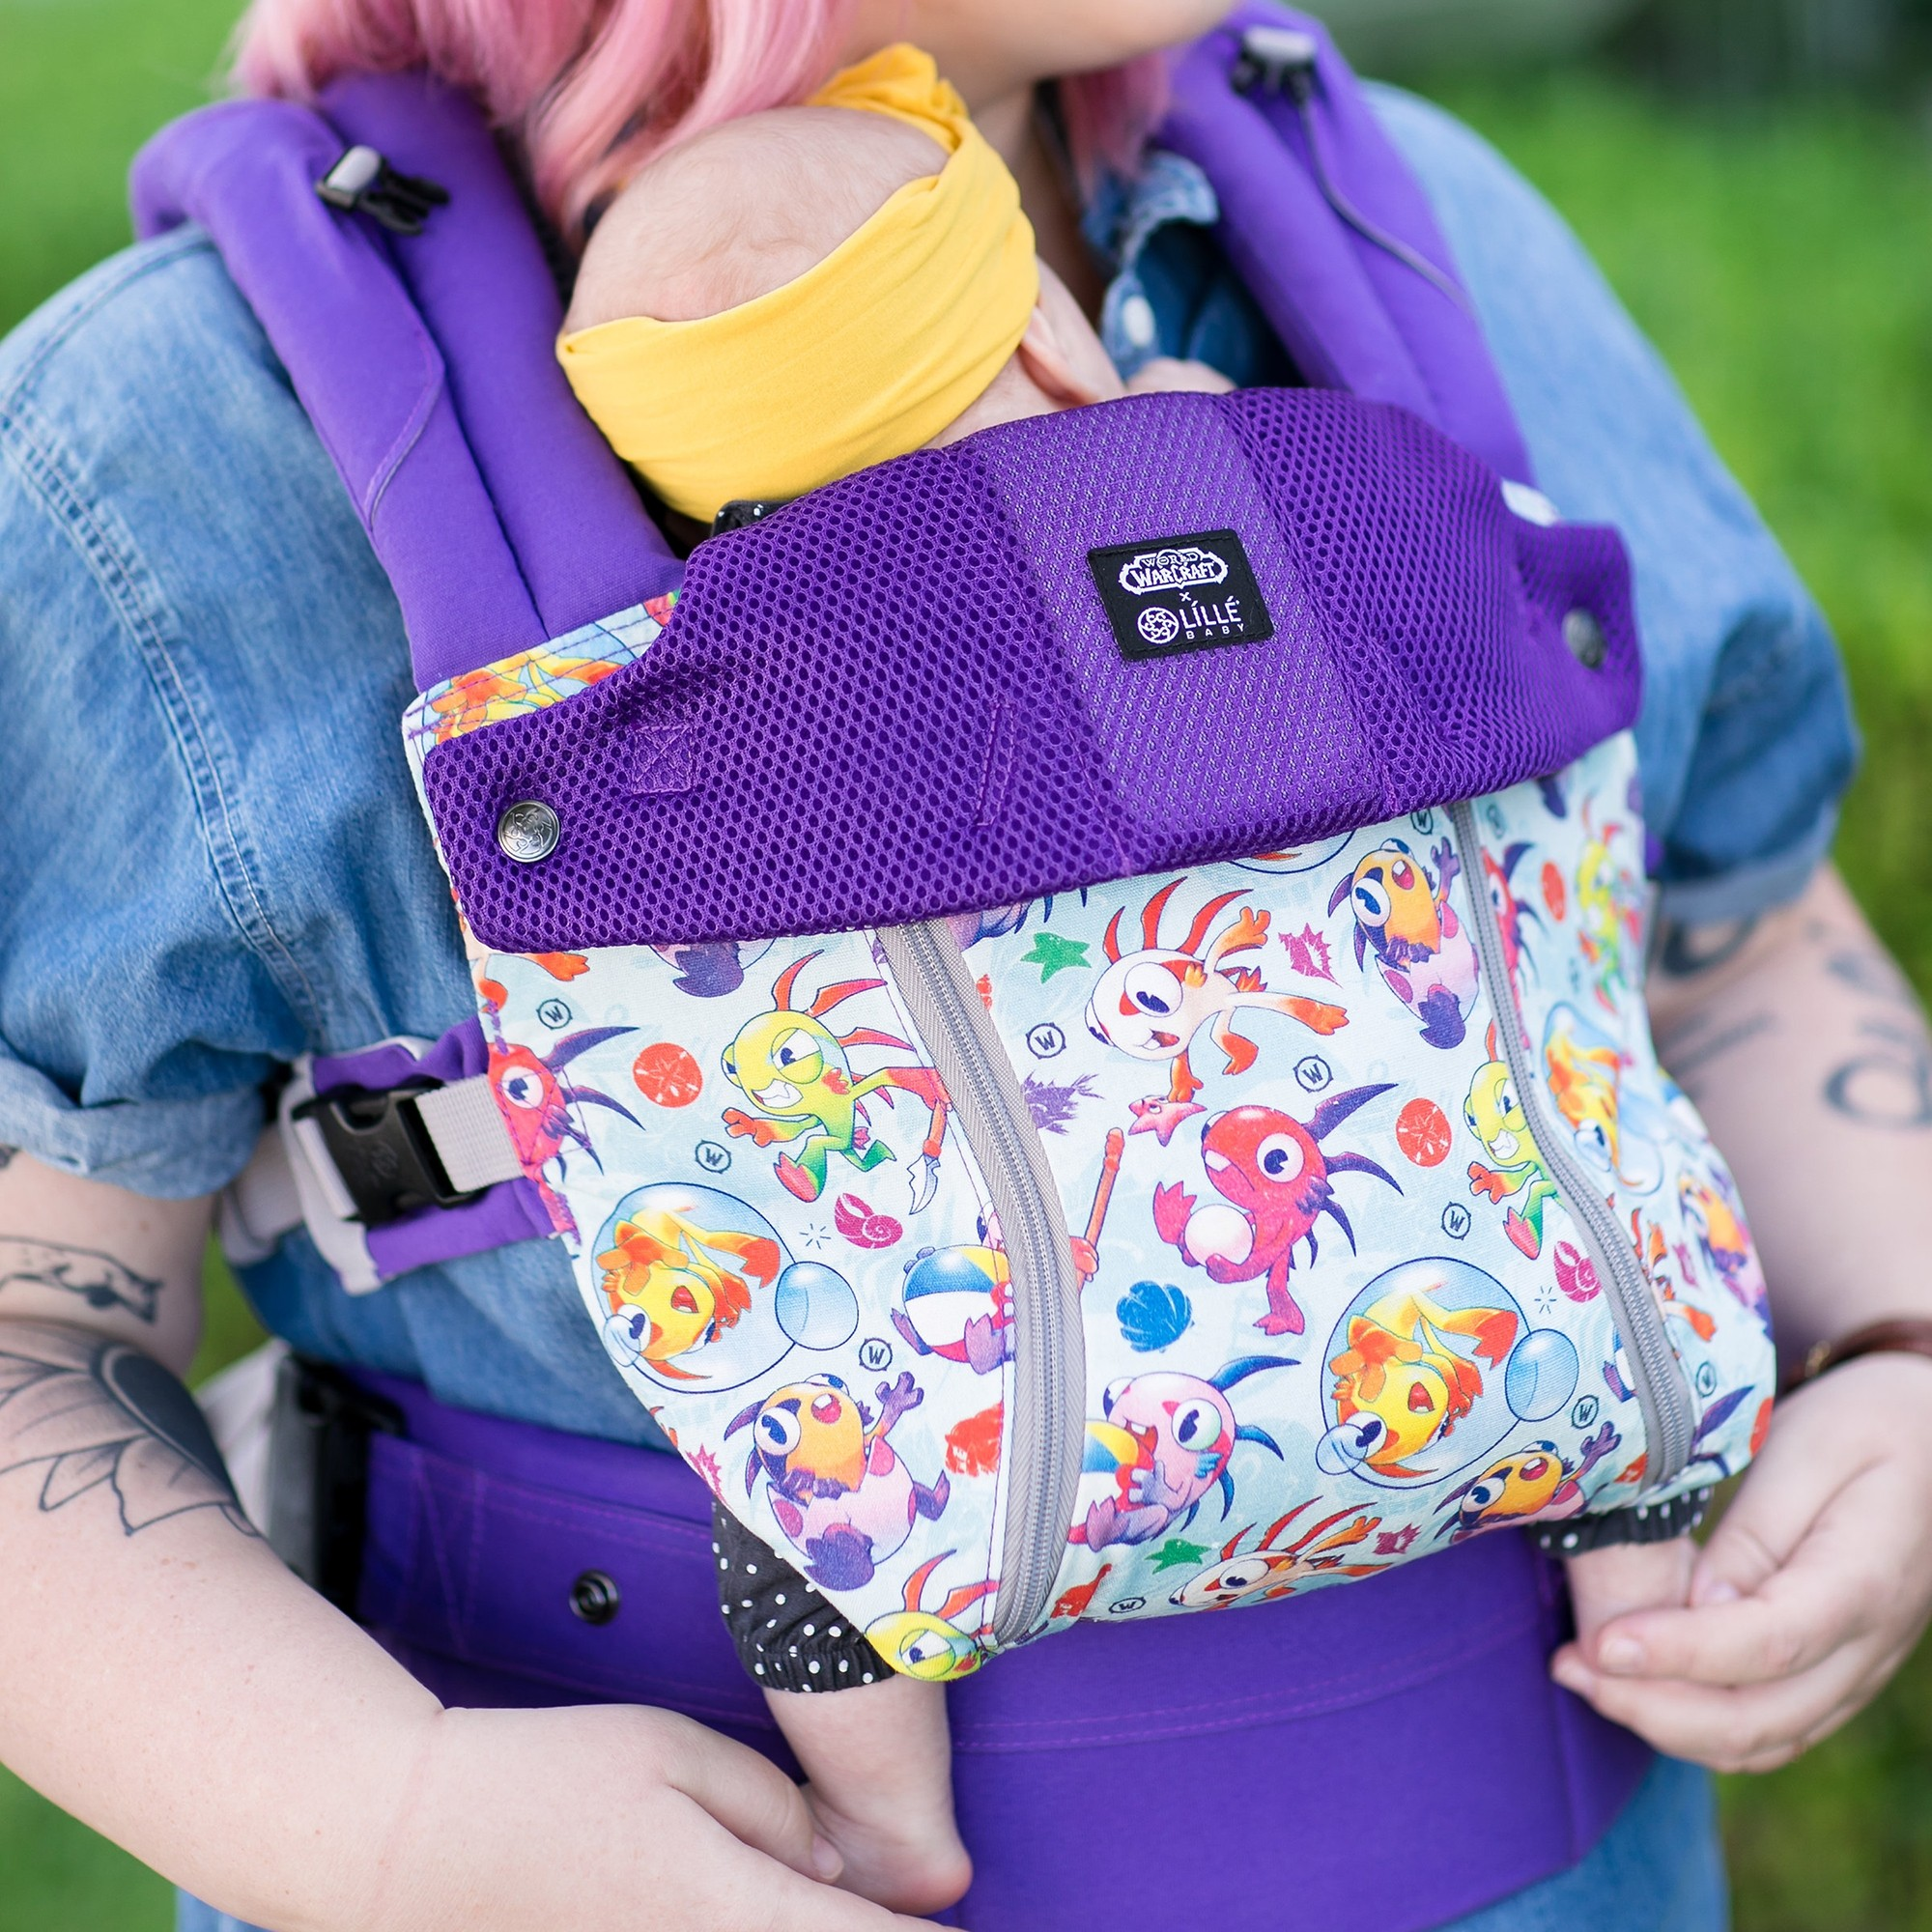 Now You Can Rock a LILLEbaby Baby Carrier Featuring 'World of Warcraft' Characters